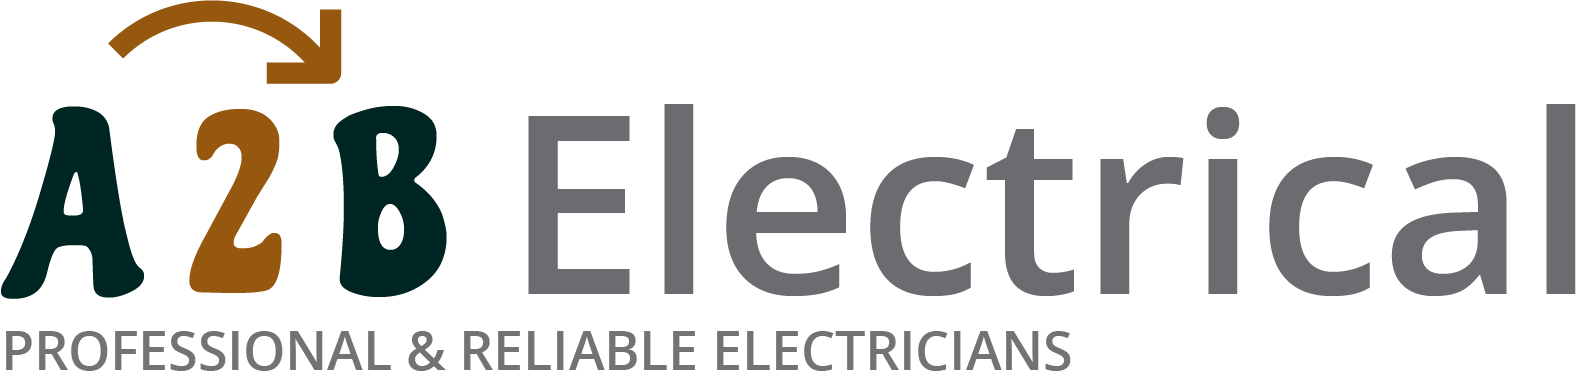 If you have electrical wiring problems in Epping, we can provide an electrician to have a look for you.